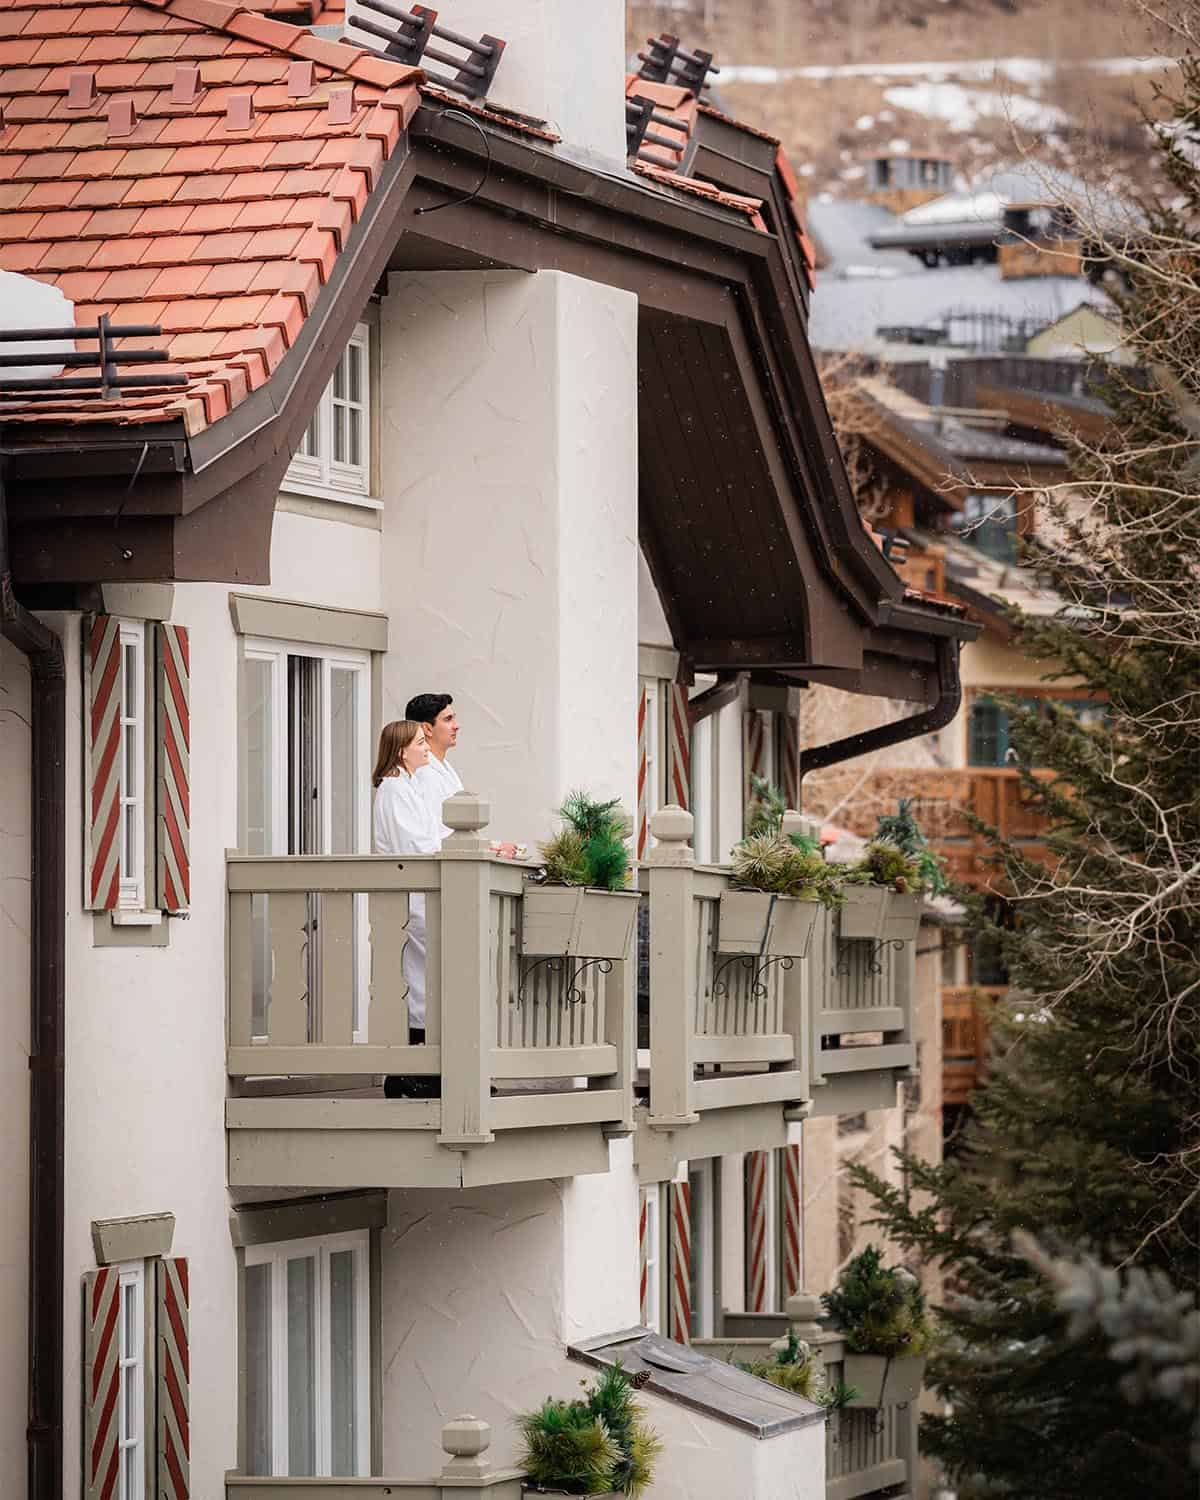 Couple on hotel balcony, wearing robes, and pine tree in the foreground